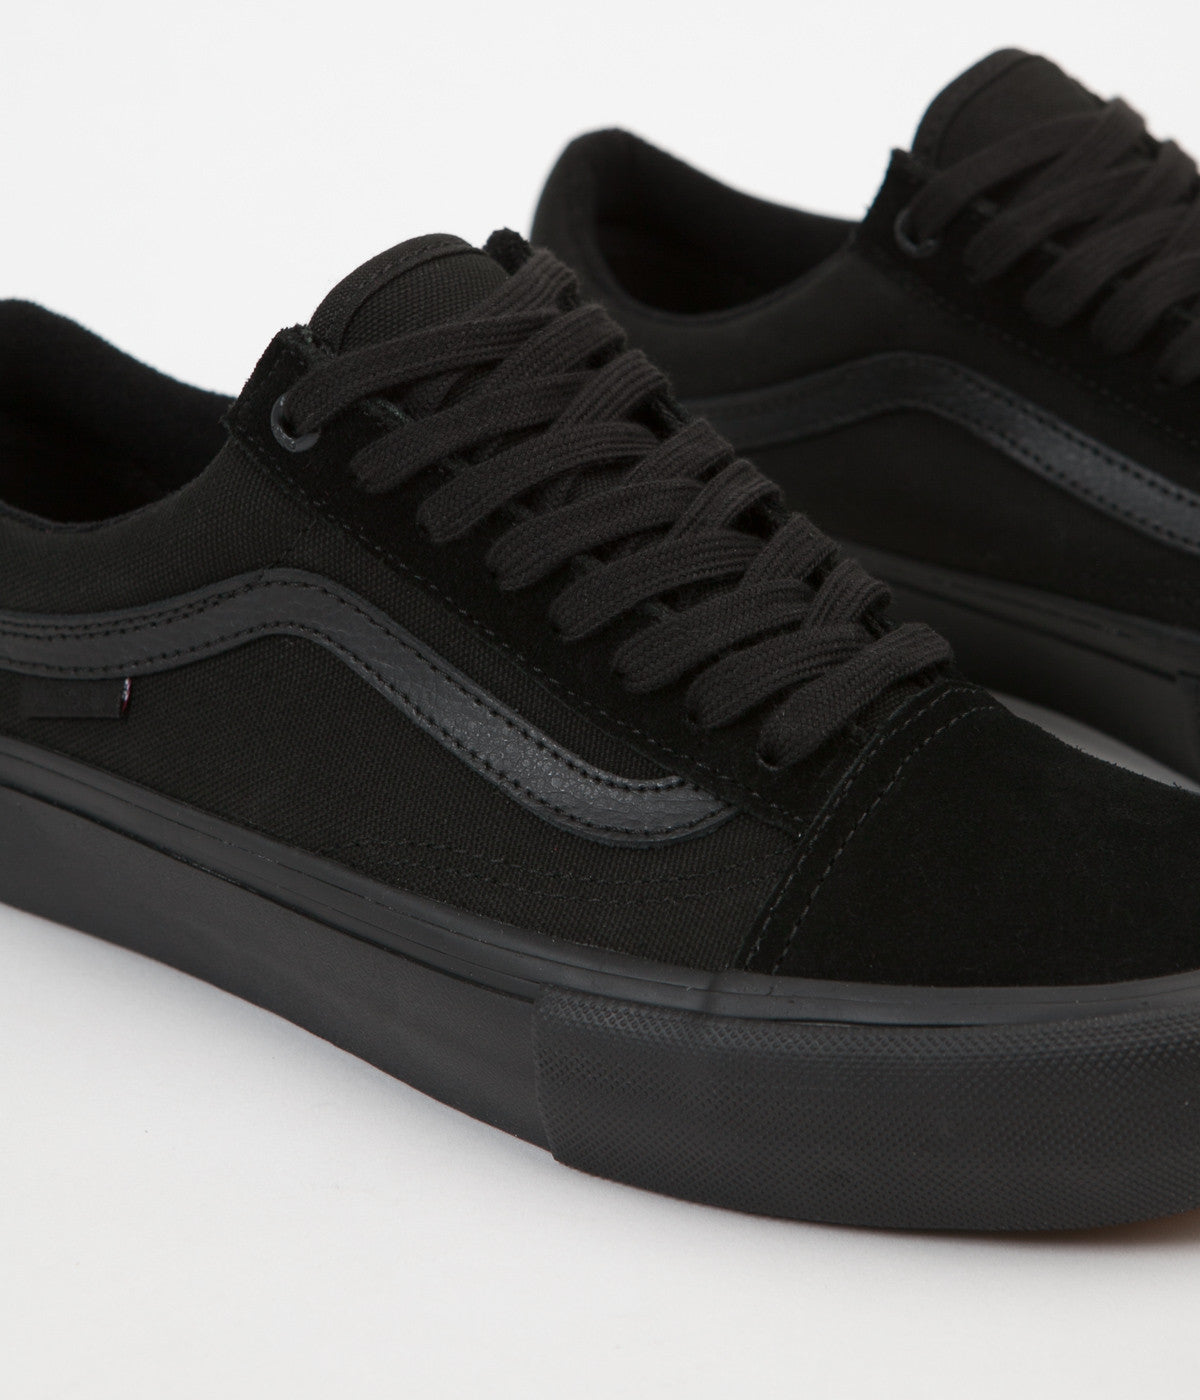 79e13f132e ... Vans Old Skool Pro Shoes - Blackout ...